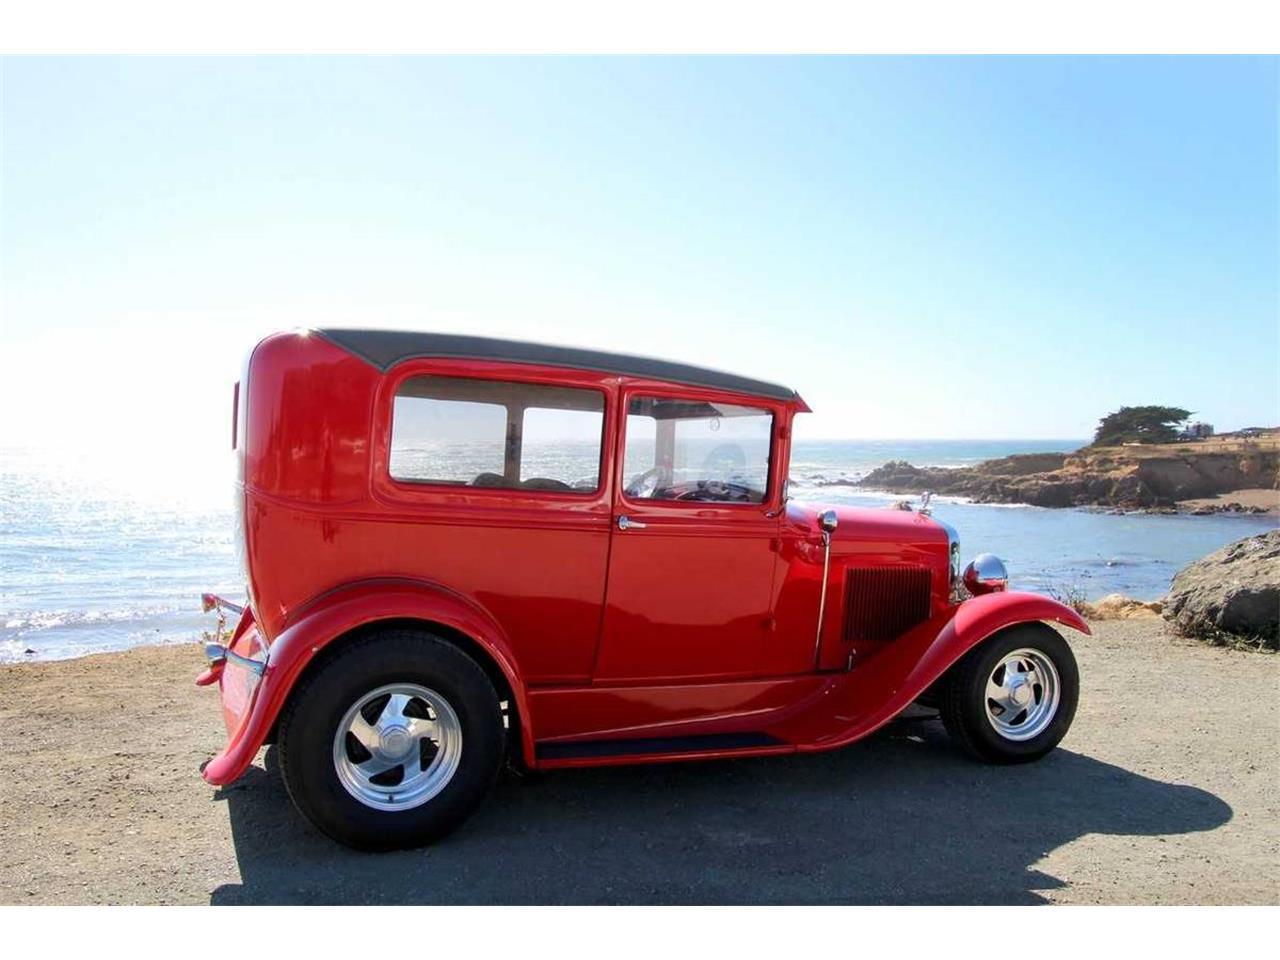 Large Picture of '30 Ford Tudor located in California - $39,999.00 Offered by a Private Seller - NGQ9